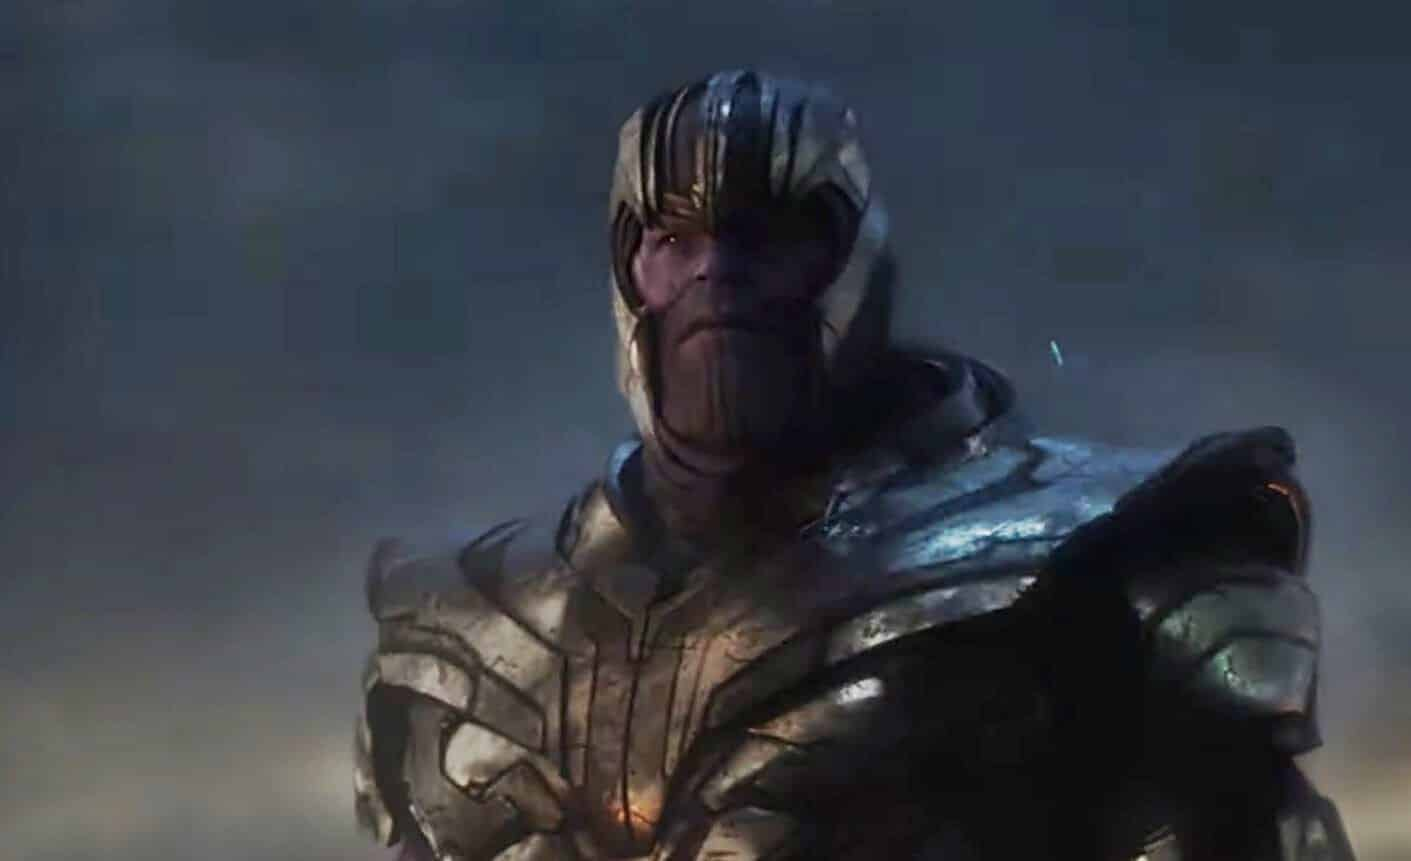 Avengers: Endgame: First Look At Thanos And His New Weapon In 'Avengers